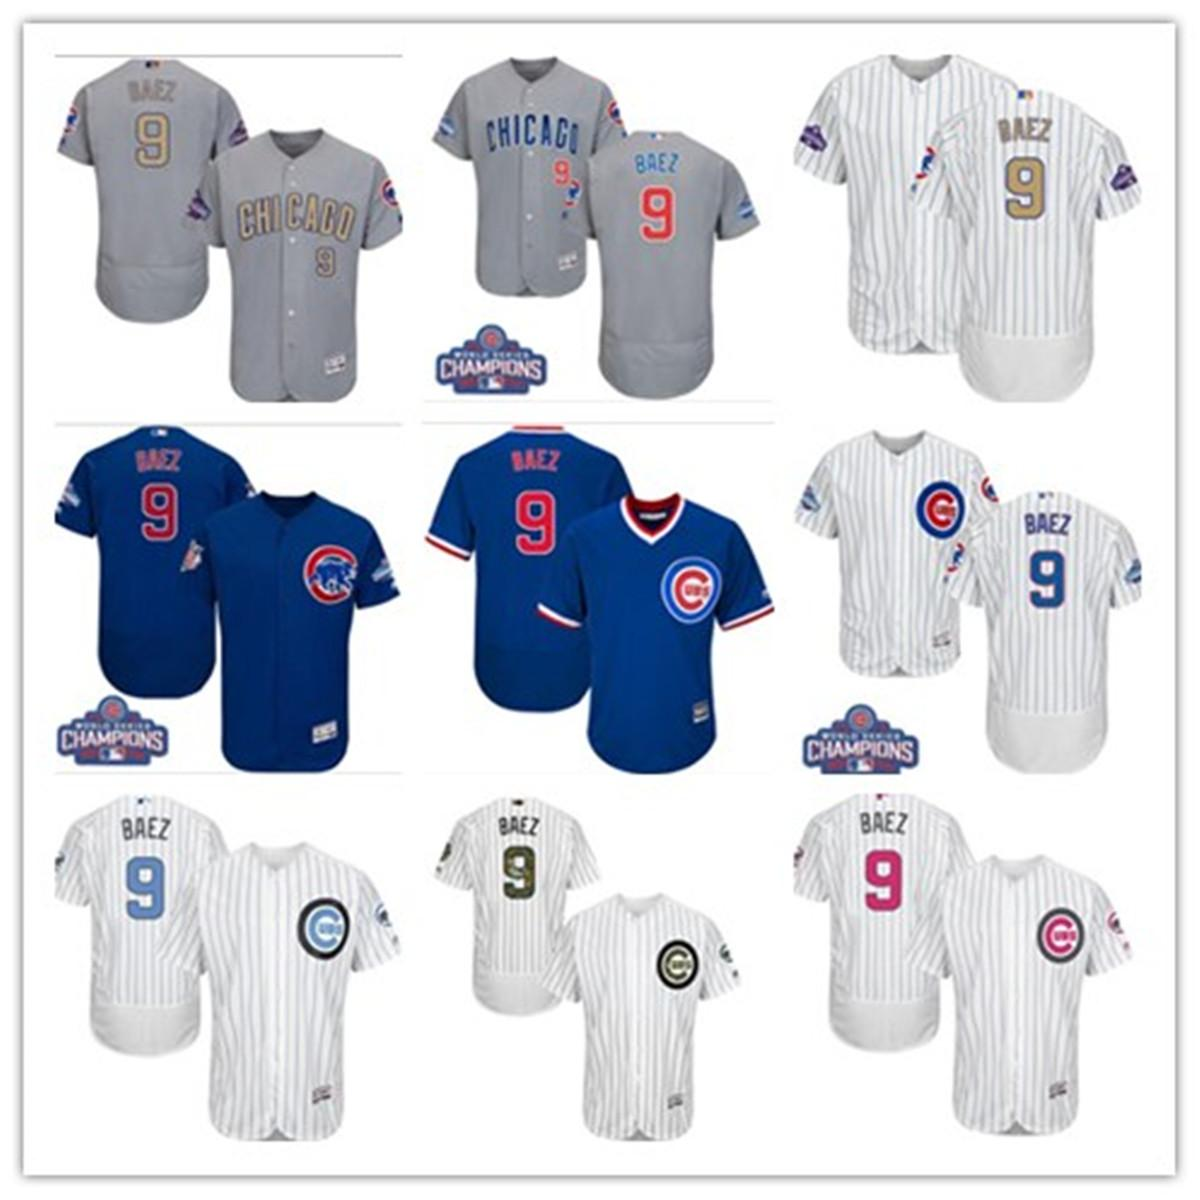 free ship Sports Baseball Jerseys Chicago ChicagoCubs 9 Javier Baez Cub men women youth red white high-quality jersey